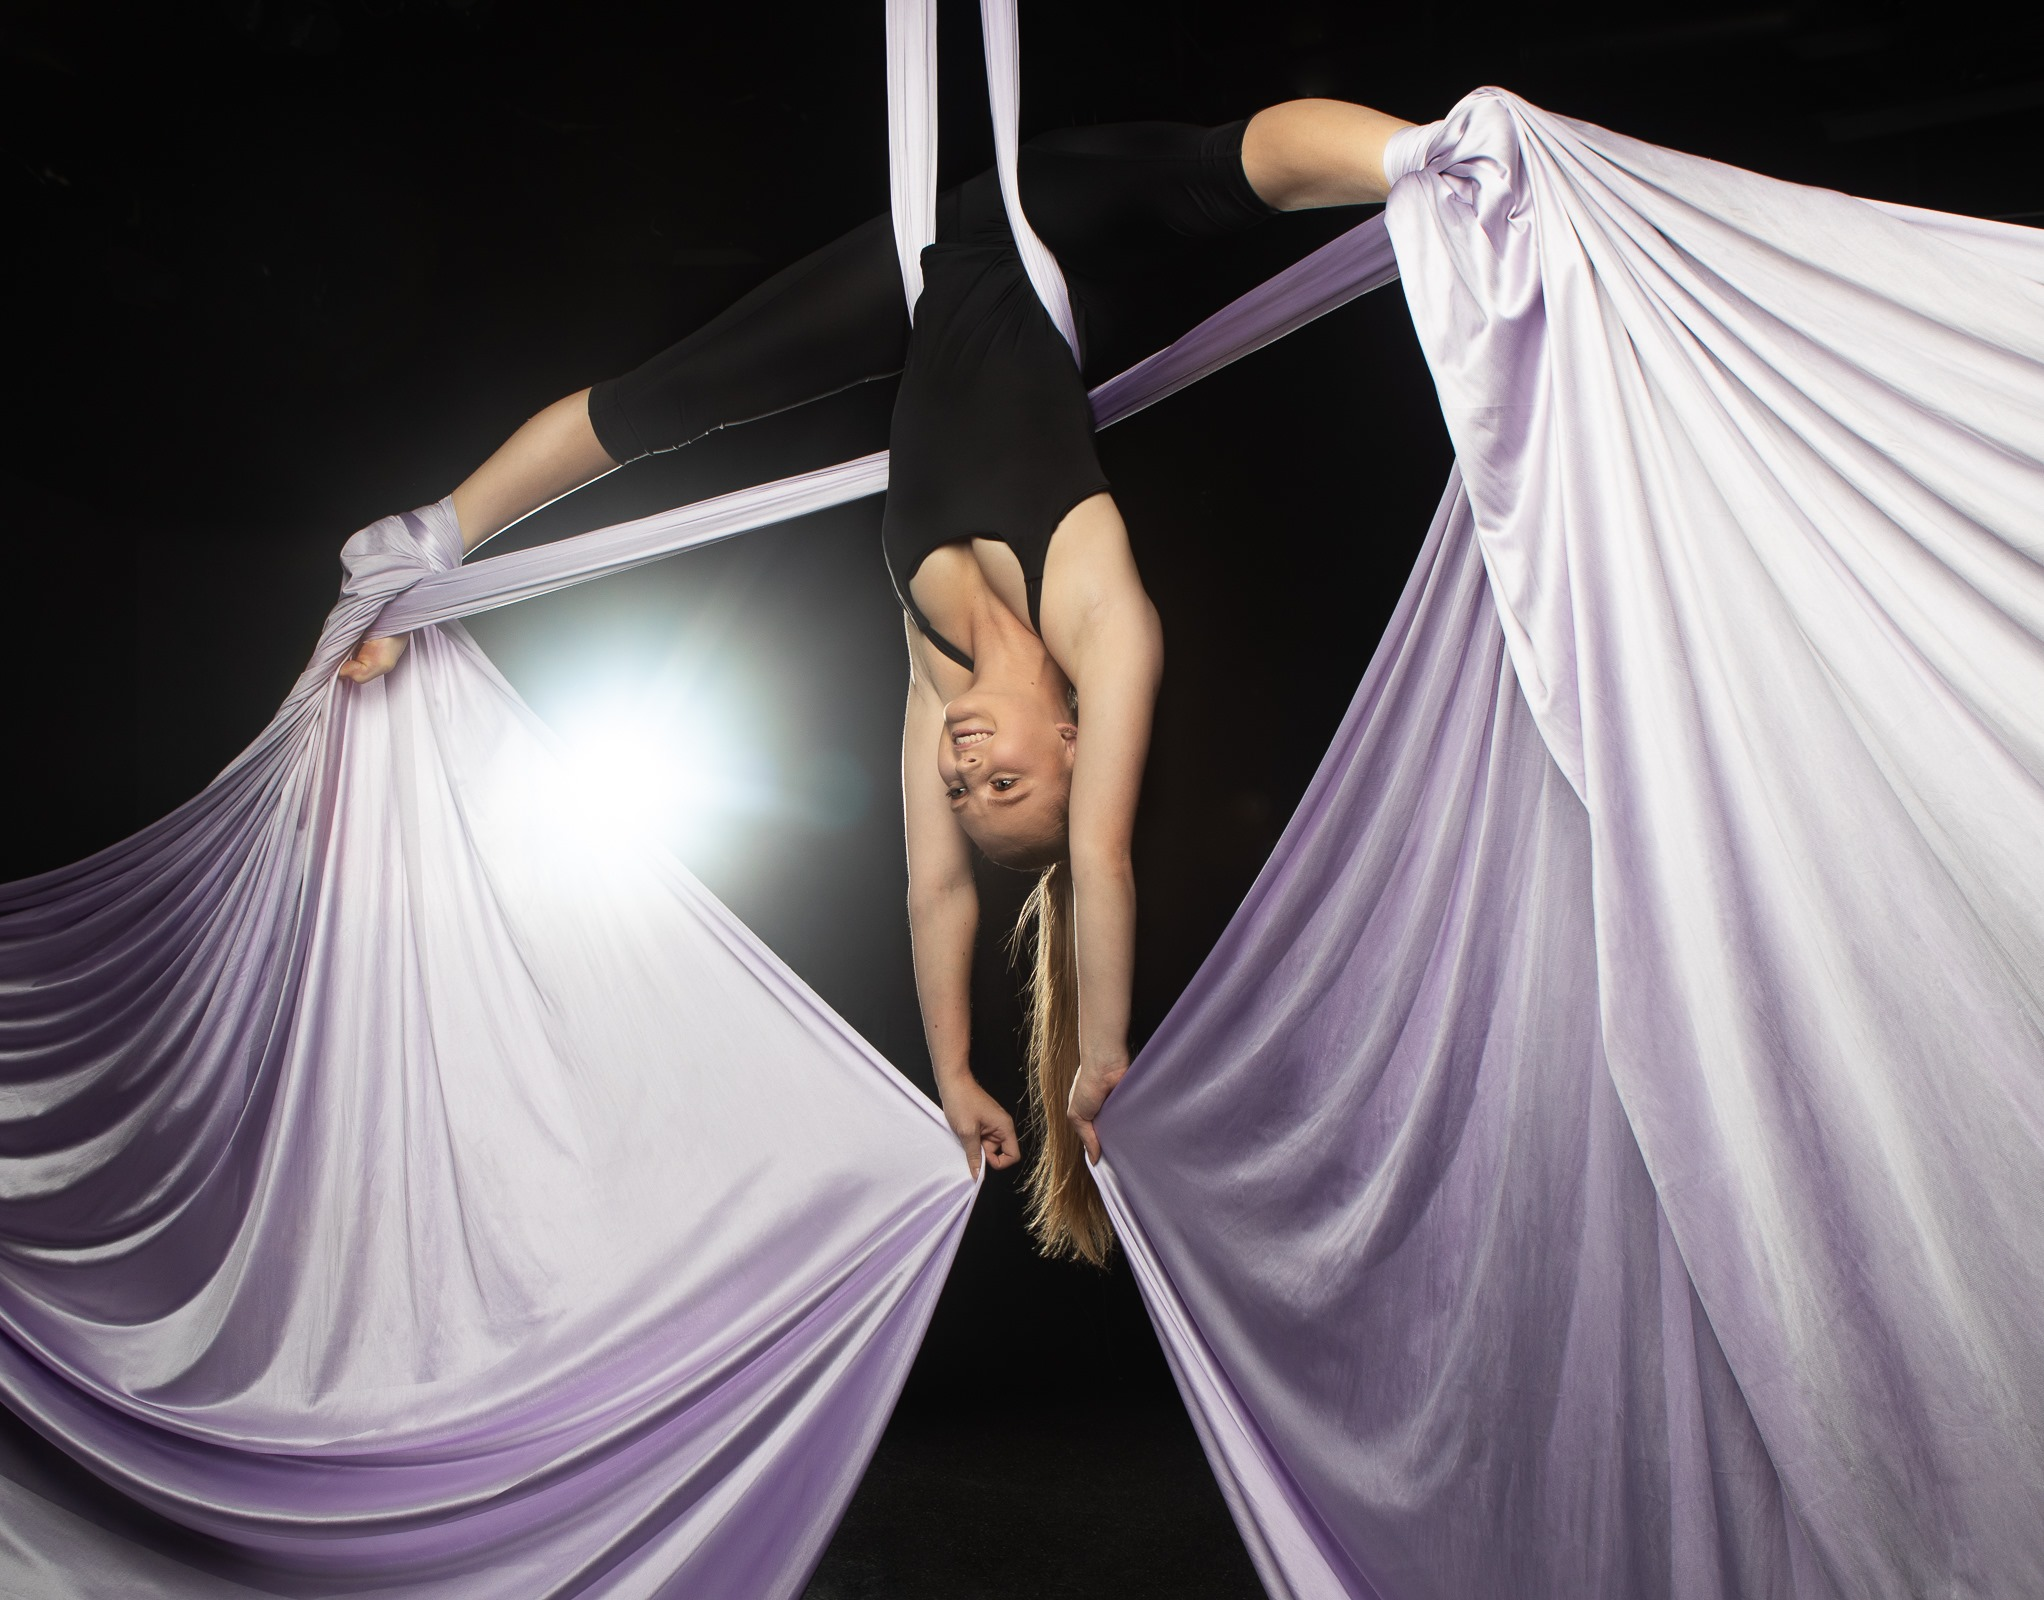 St Margaret's College has become the first school in Australasia to offer cirque aerial classes....